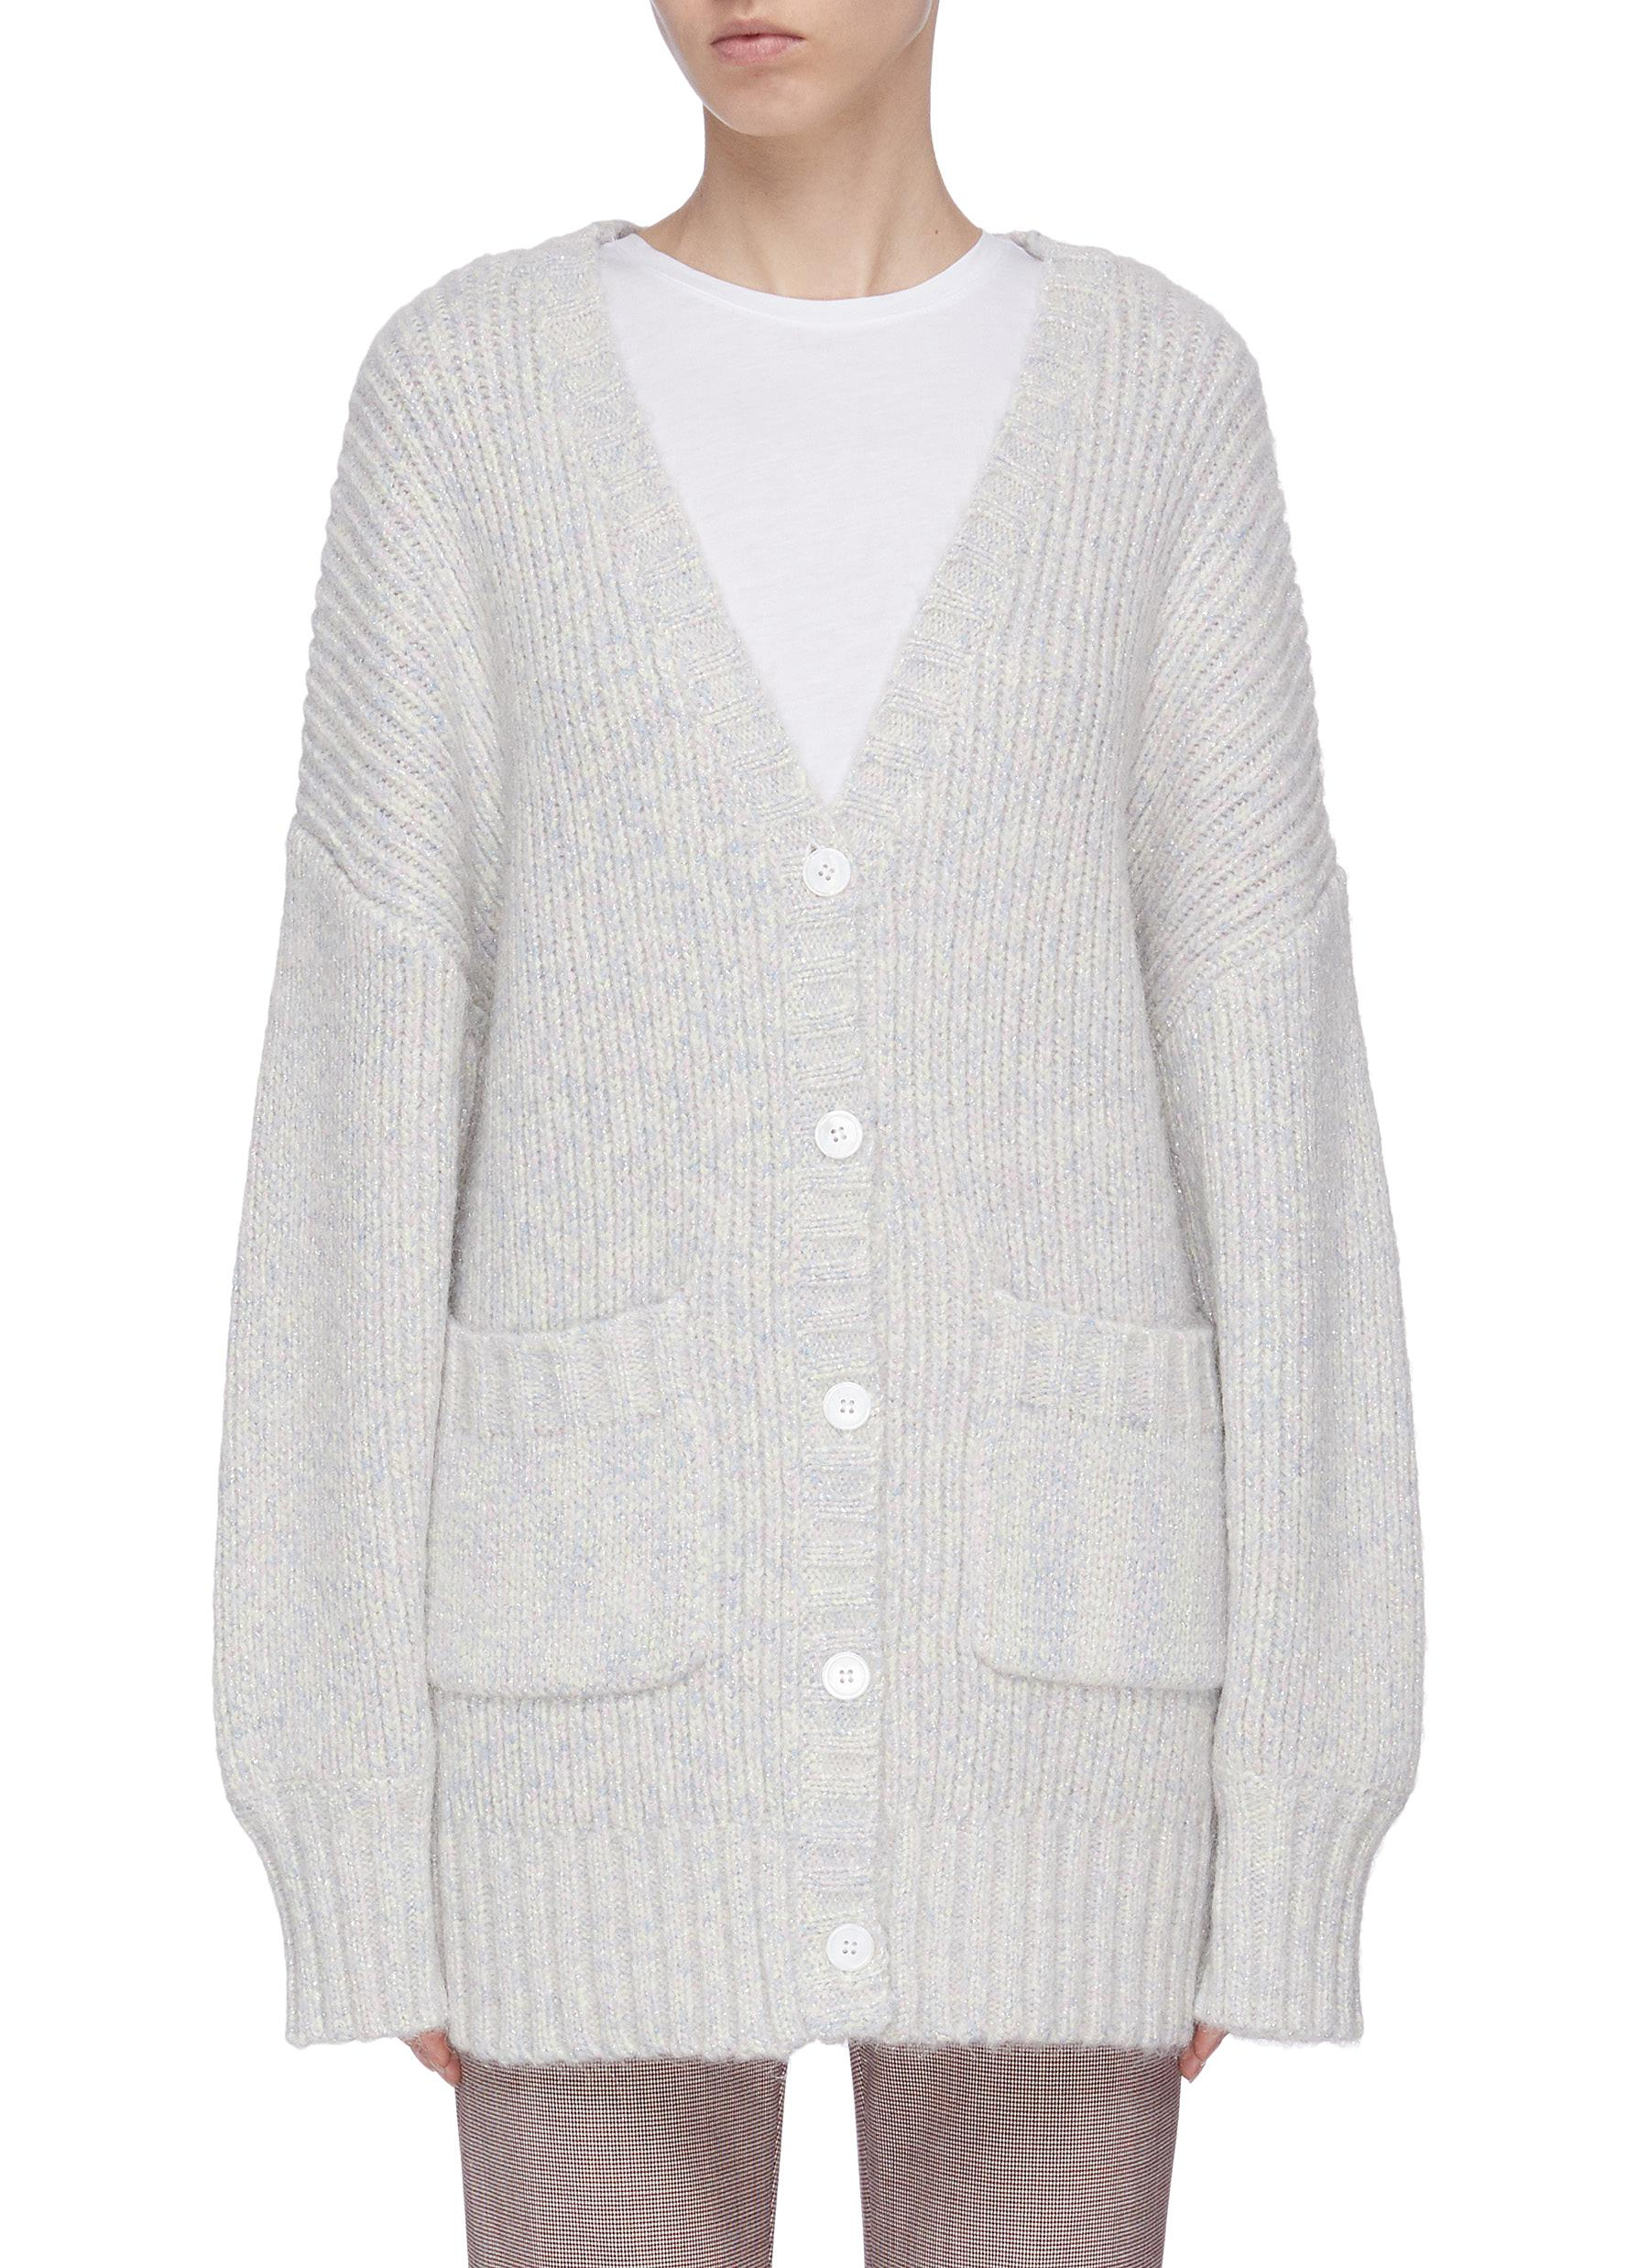 Buy Staud Knitwear 'Charlie' oversized cardigan